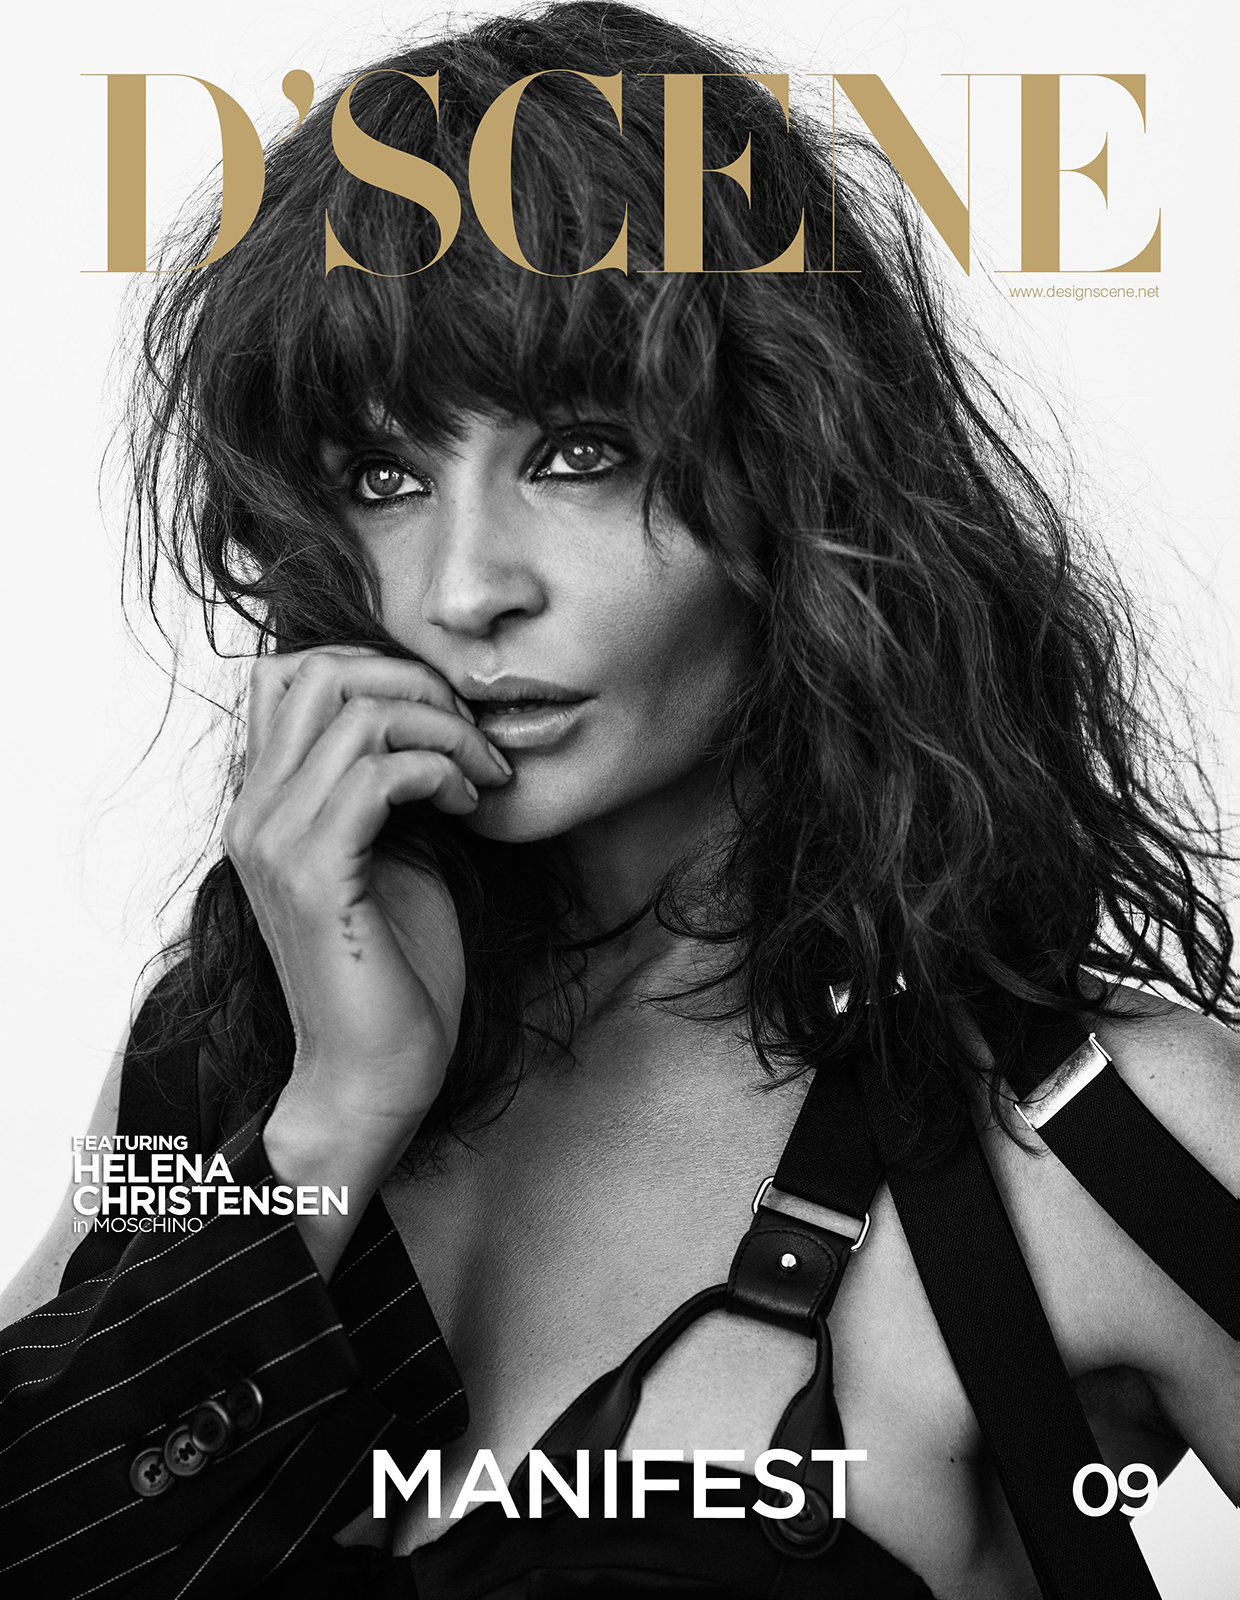 Helena christensen gq uk oct 2007 by michael williams hq scans - 2019 year